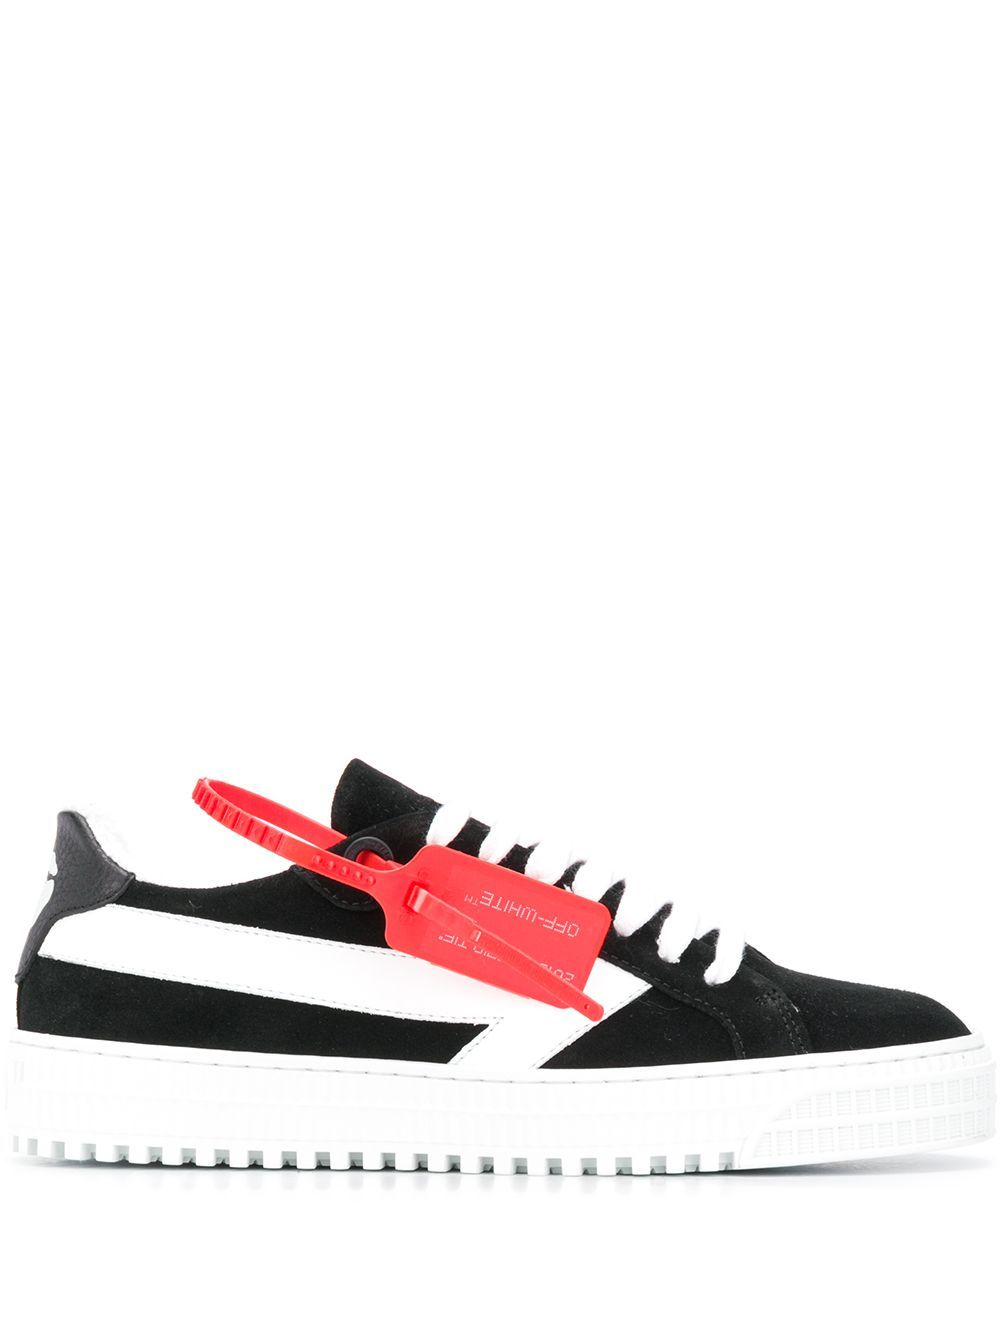 OFF-WHITE women arrow sneakers black/white - Maison De Fashion